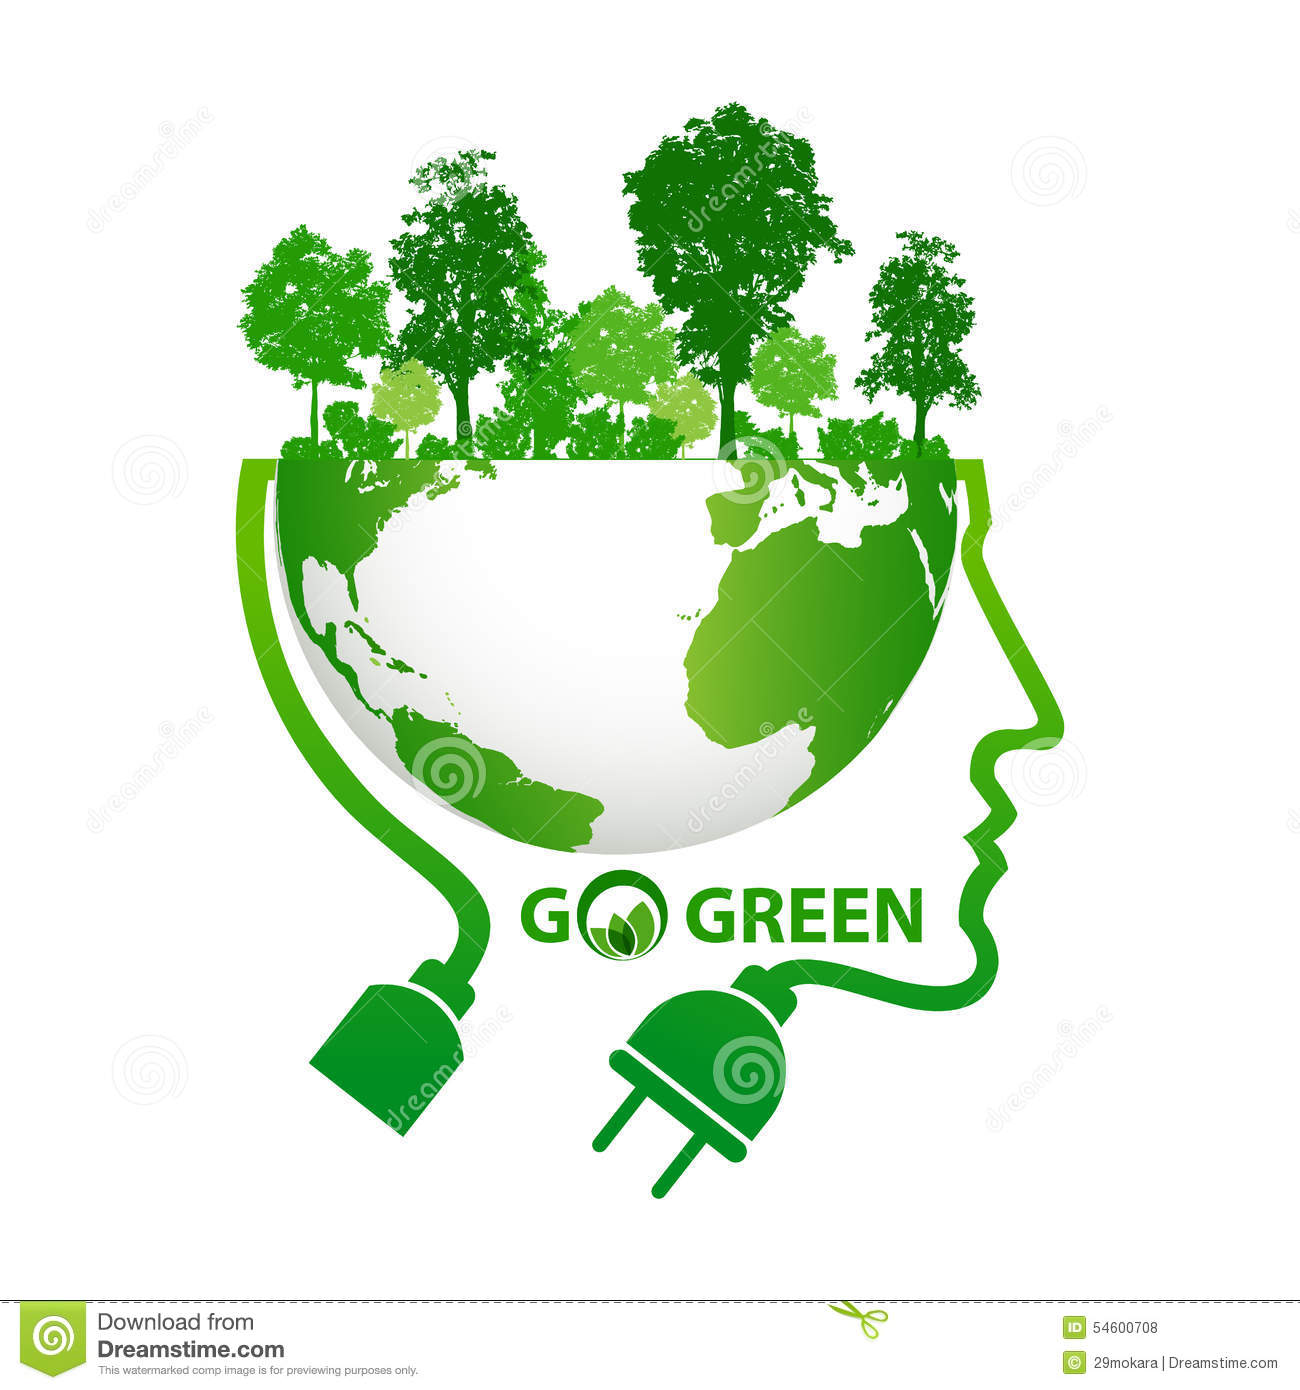 SAVE ENERGY SAVE EARTH EPUB